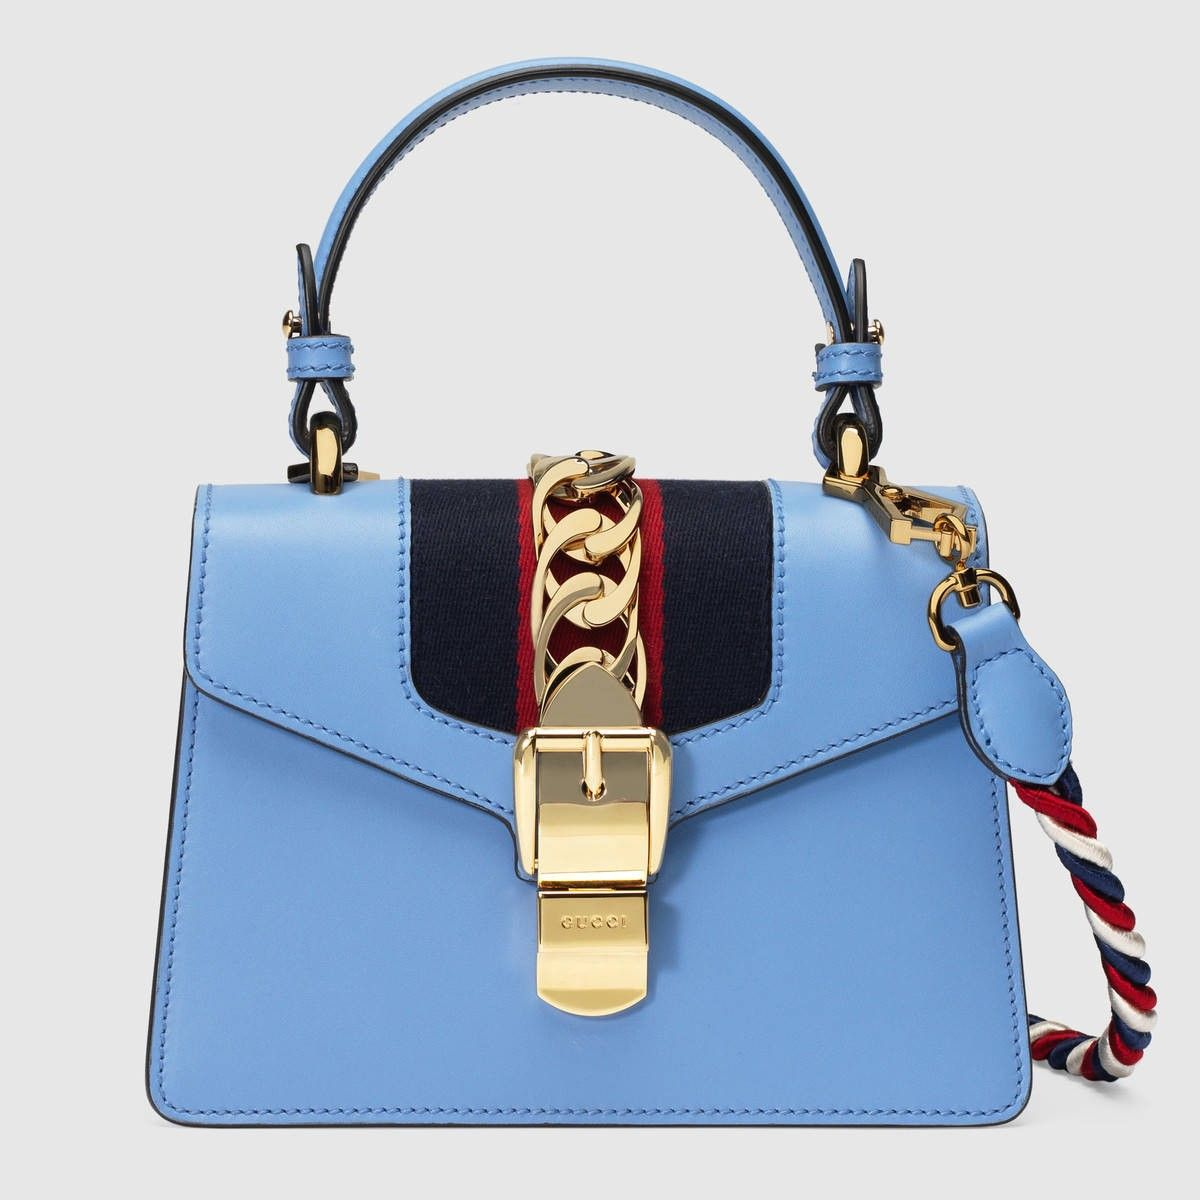 GUCCI Sylvie Leather Mini Bag - Light Blue Leather.  gucci  bags  shoulder  bags  hand bags  nylon  suede  lining   a3d20efa66be3